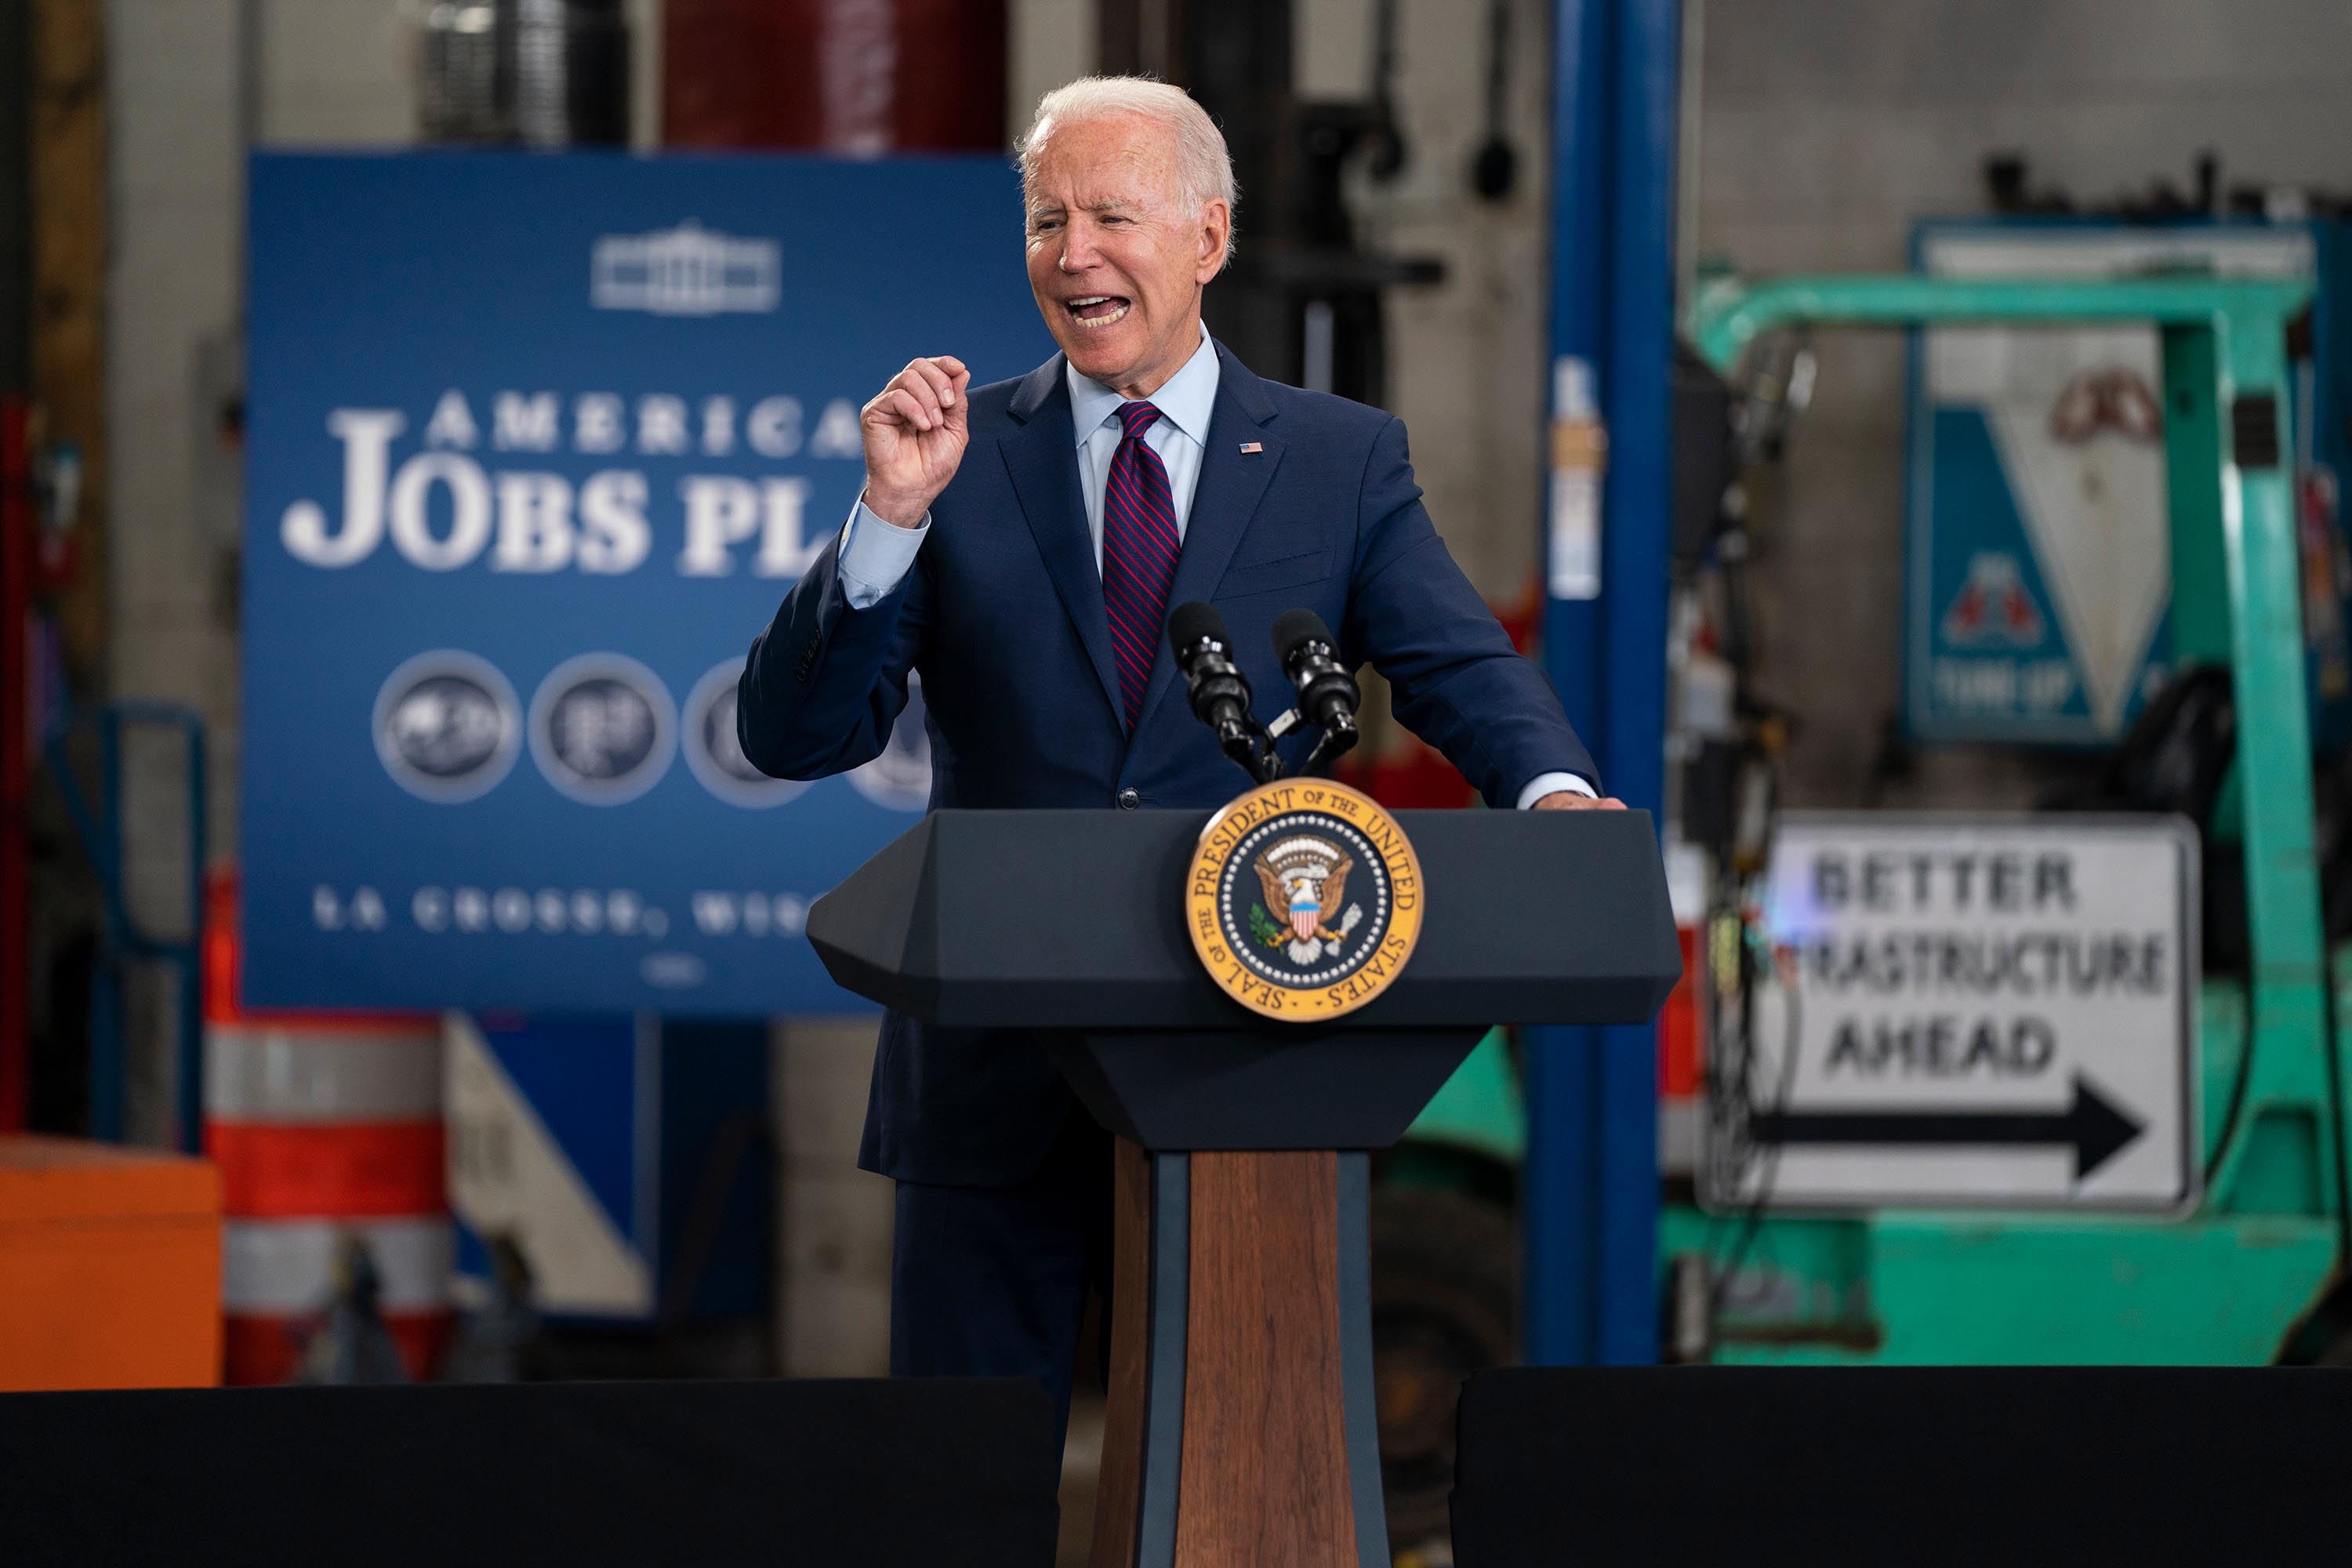 'This is historic progress:' Biden touts economic recovery after US added 850,000 jobs in June